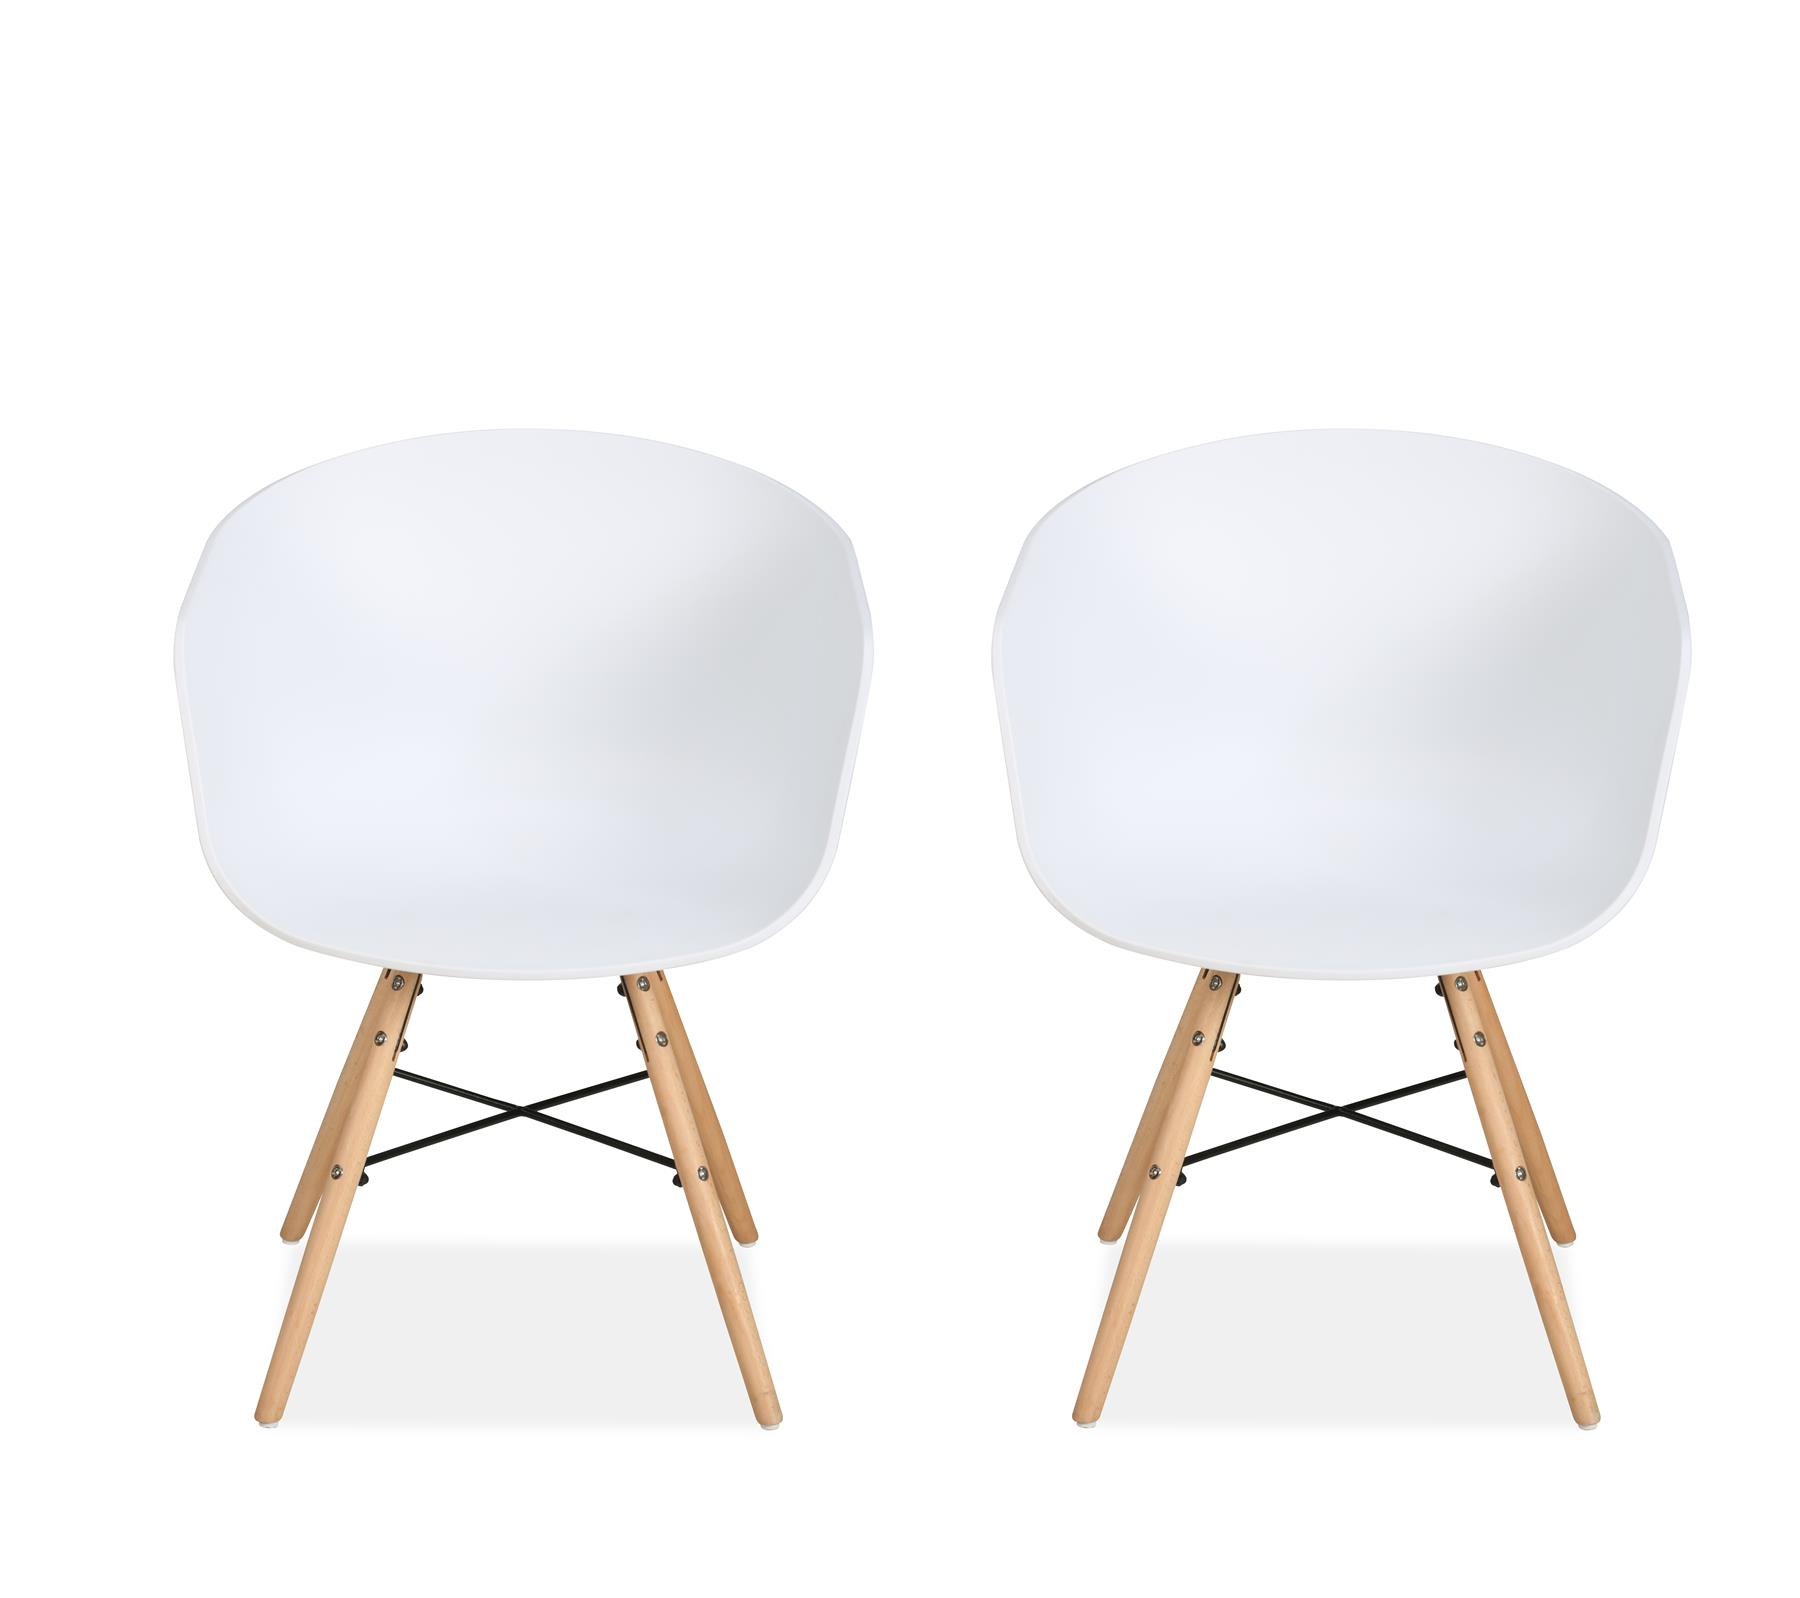 Birlea Kipling 2x White Dining Chair Scandinavian Modern Retro Design Pair Wood